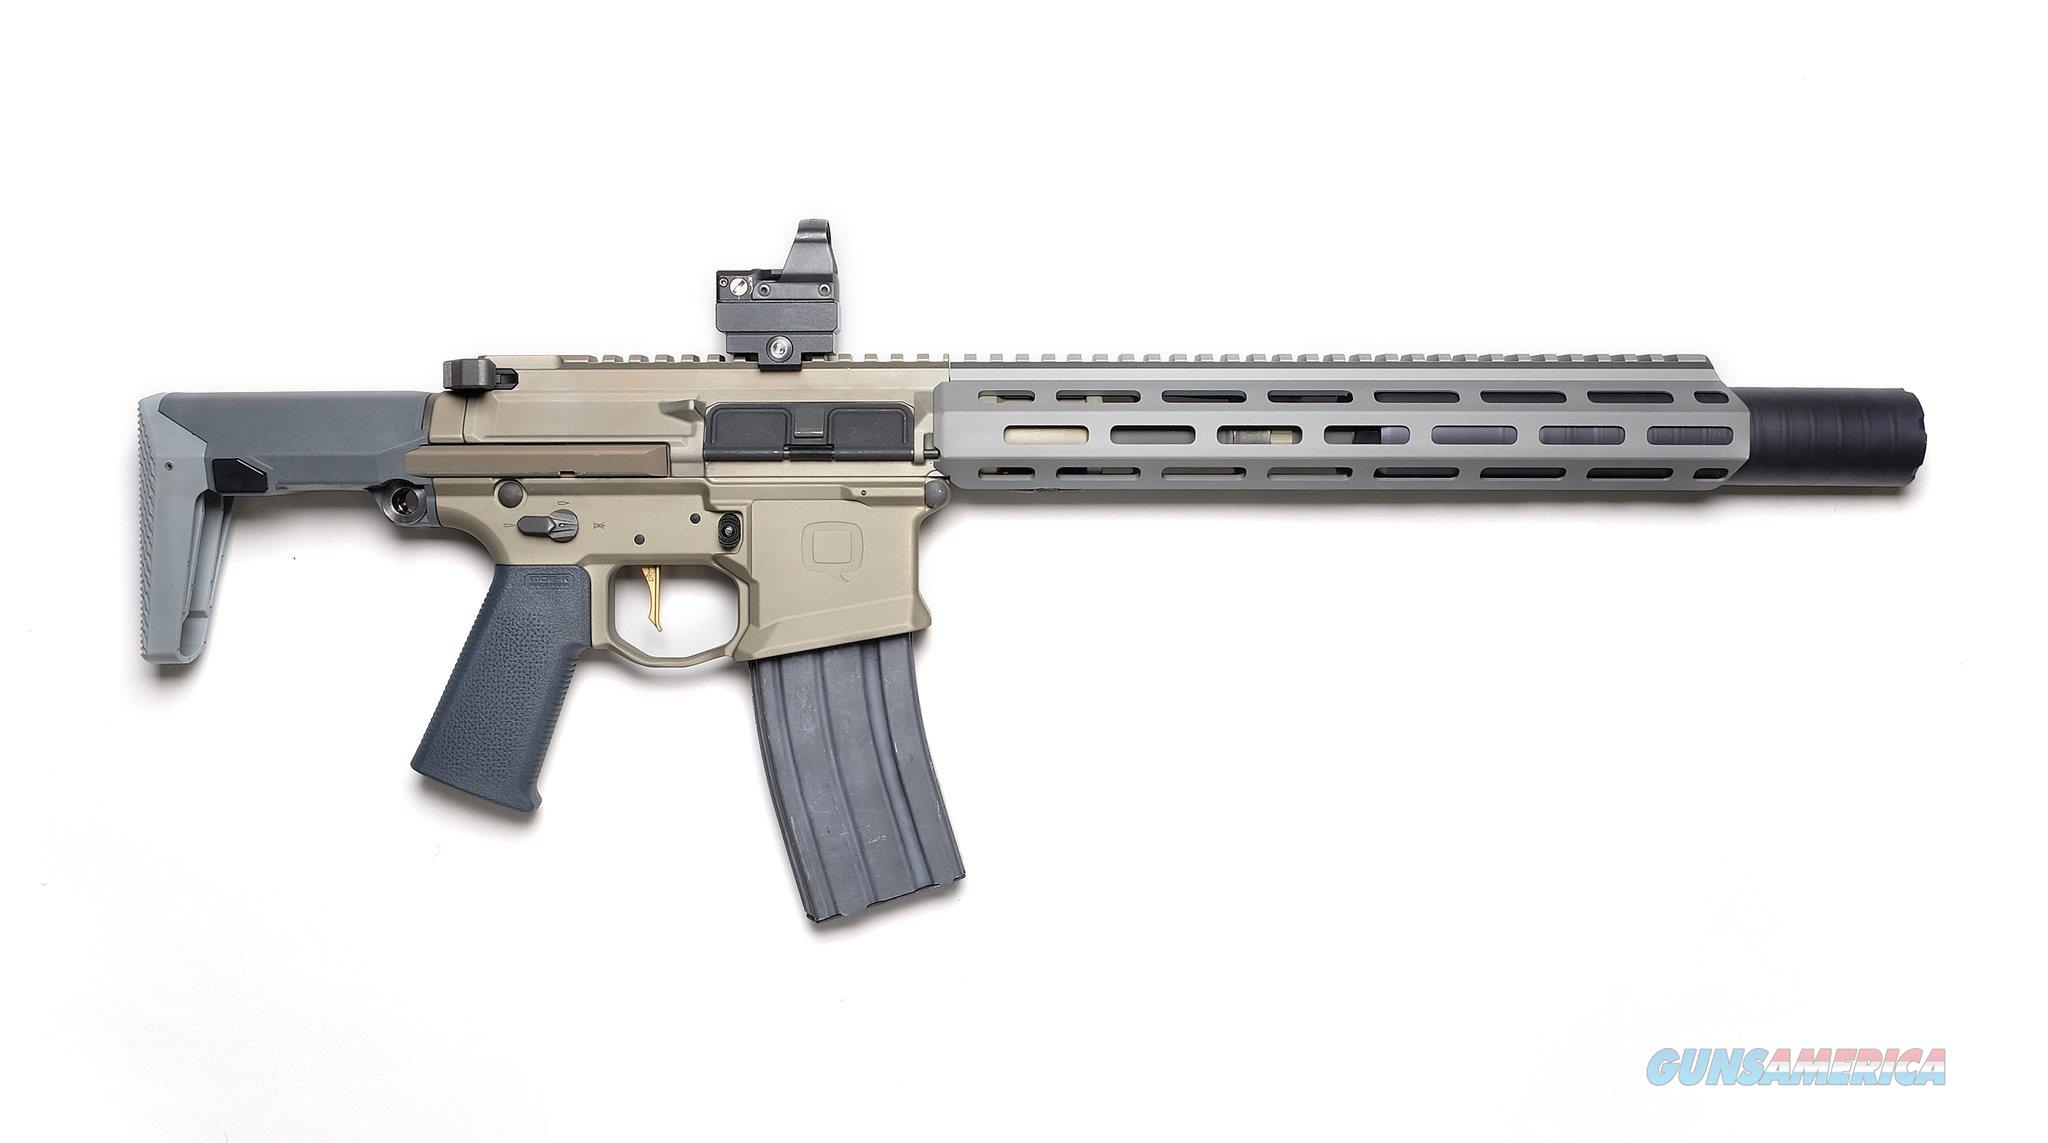 Impossible to find 2 Stamp - Q HONEY BADGER SD 300BLK SBR WITH HONEY BADGER SILENCER! NEW  Guns > Rifles > PQ Misc Rifles